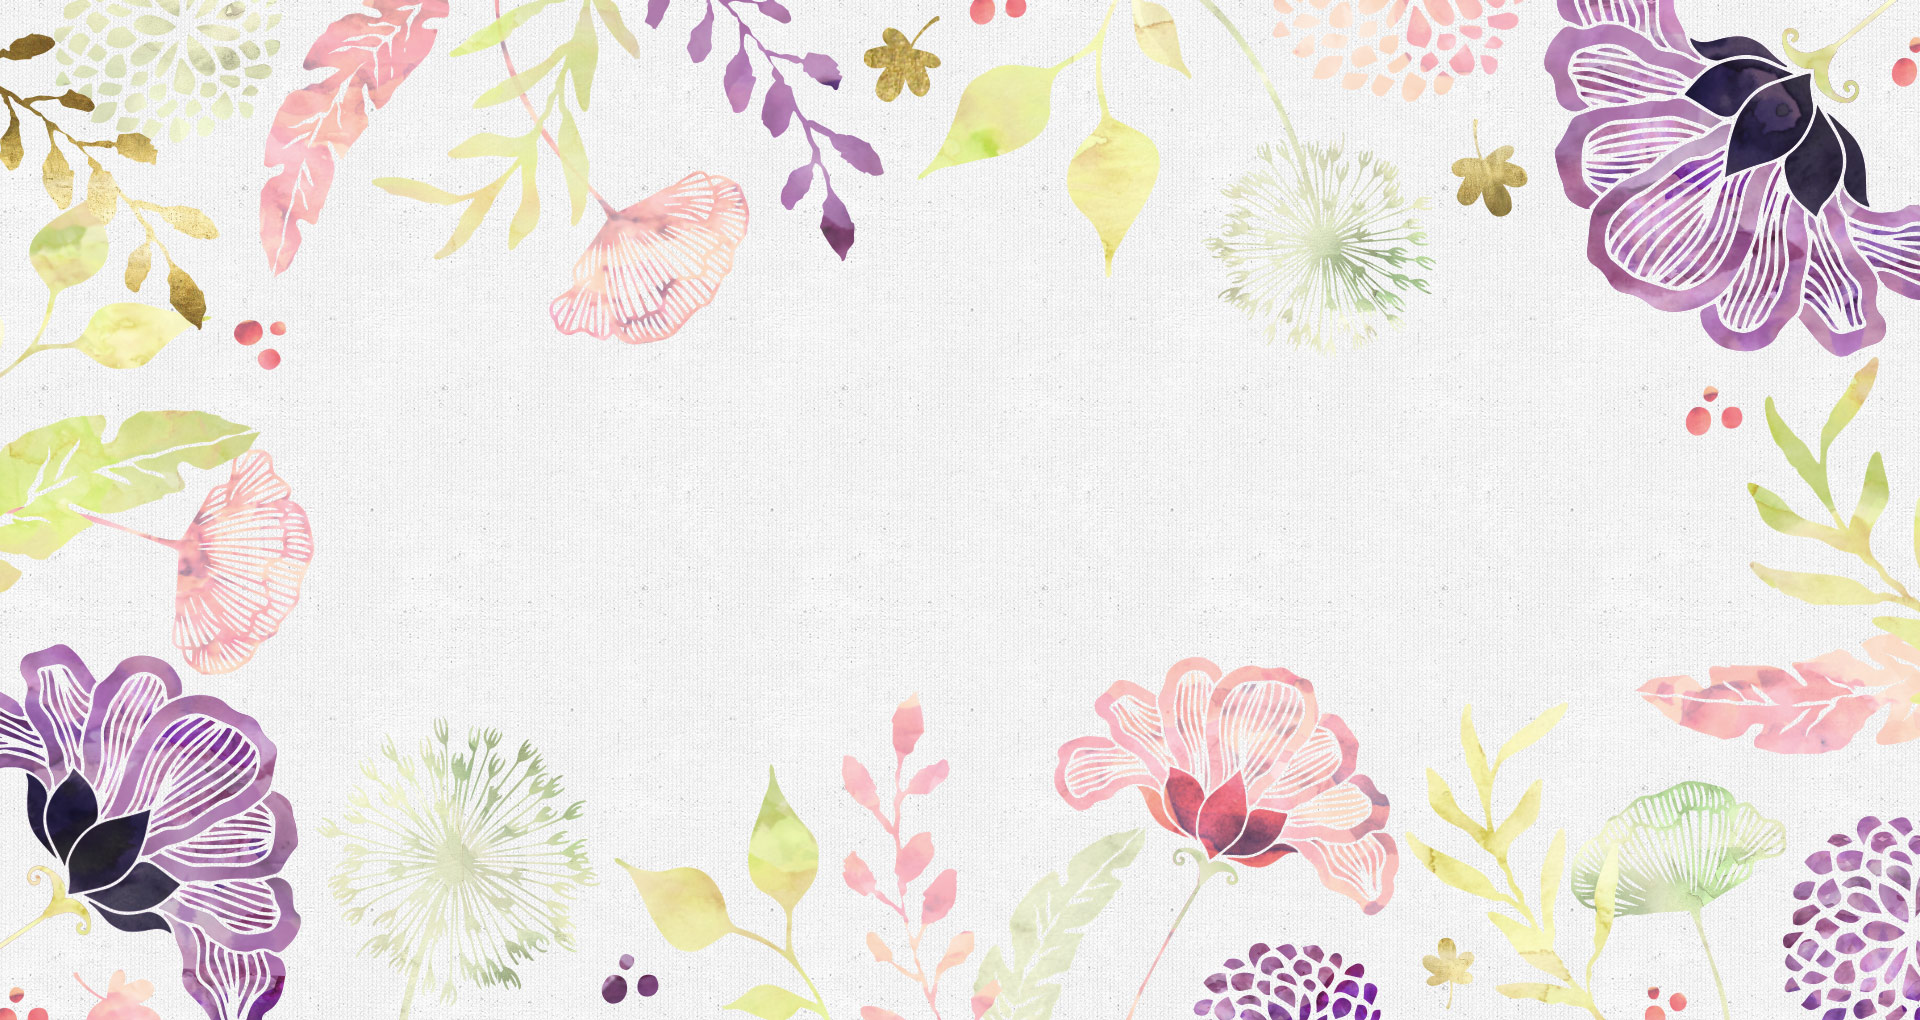 Digital Roundup Floral Desktop Wallpapers For Spring